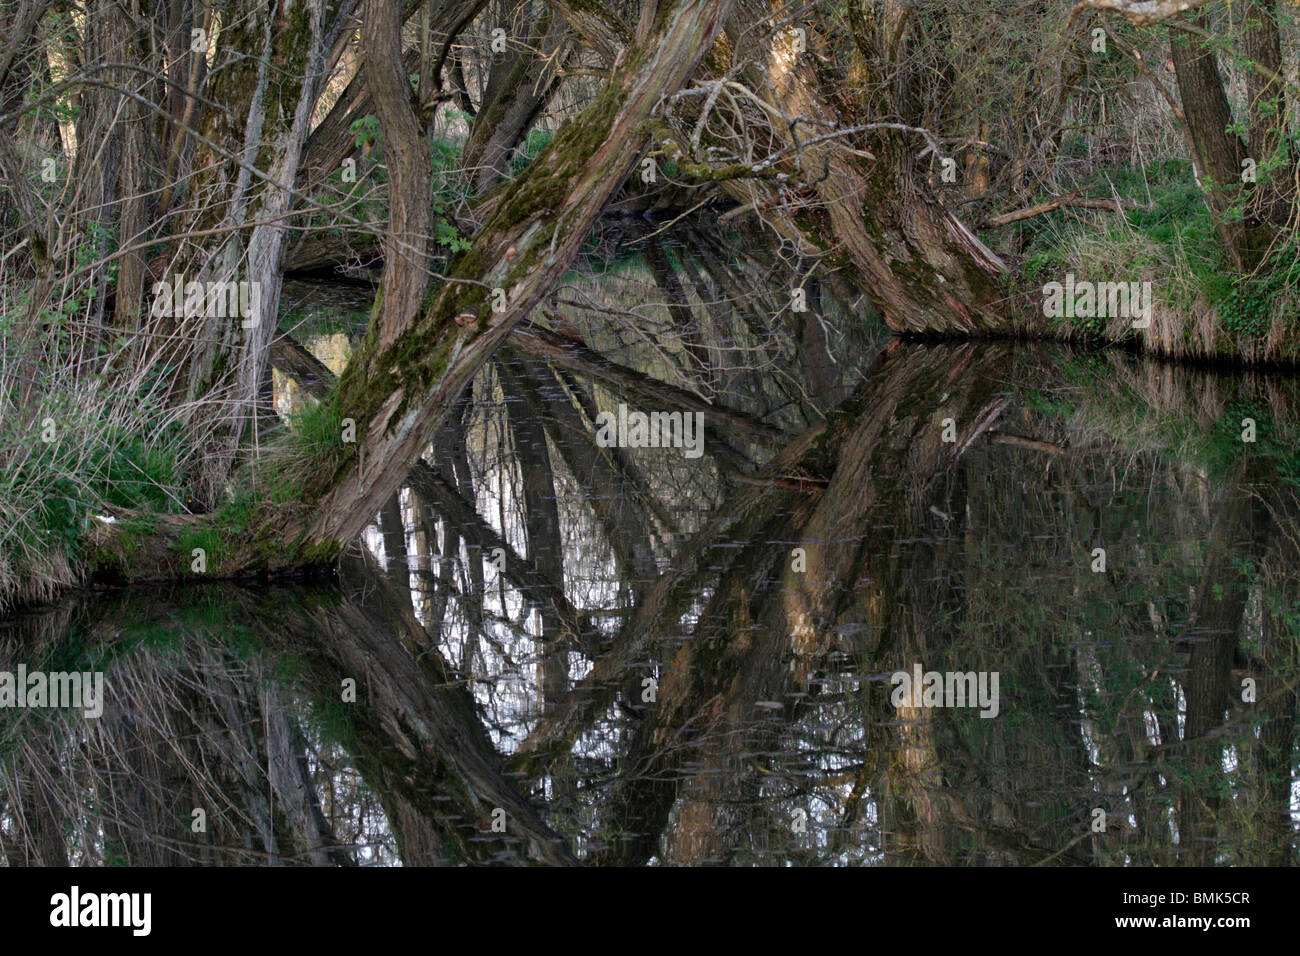 A calm creek, willows grown on the river banks and are reflected in the creek. - Stock Image